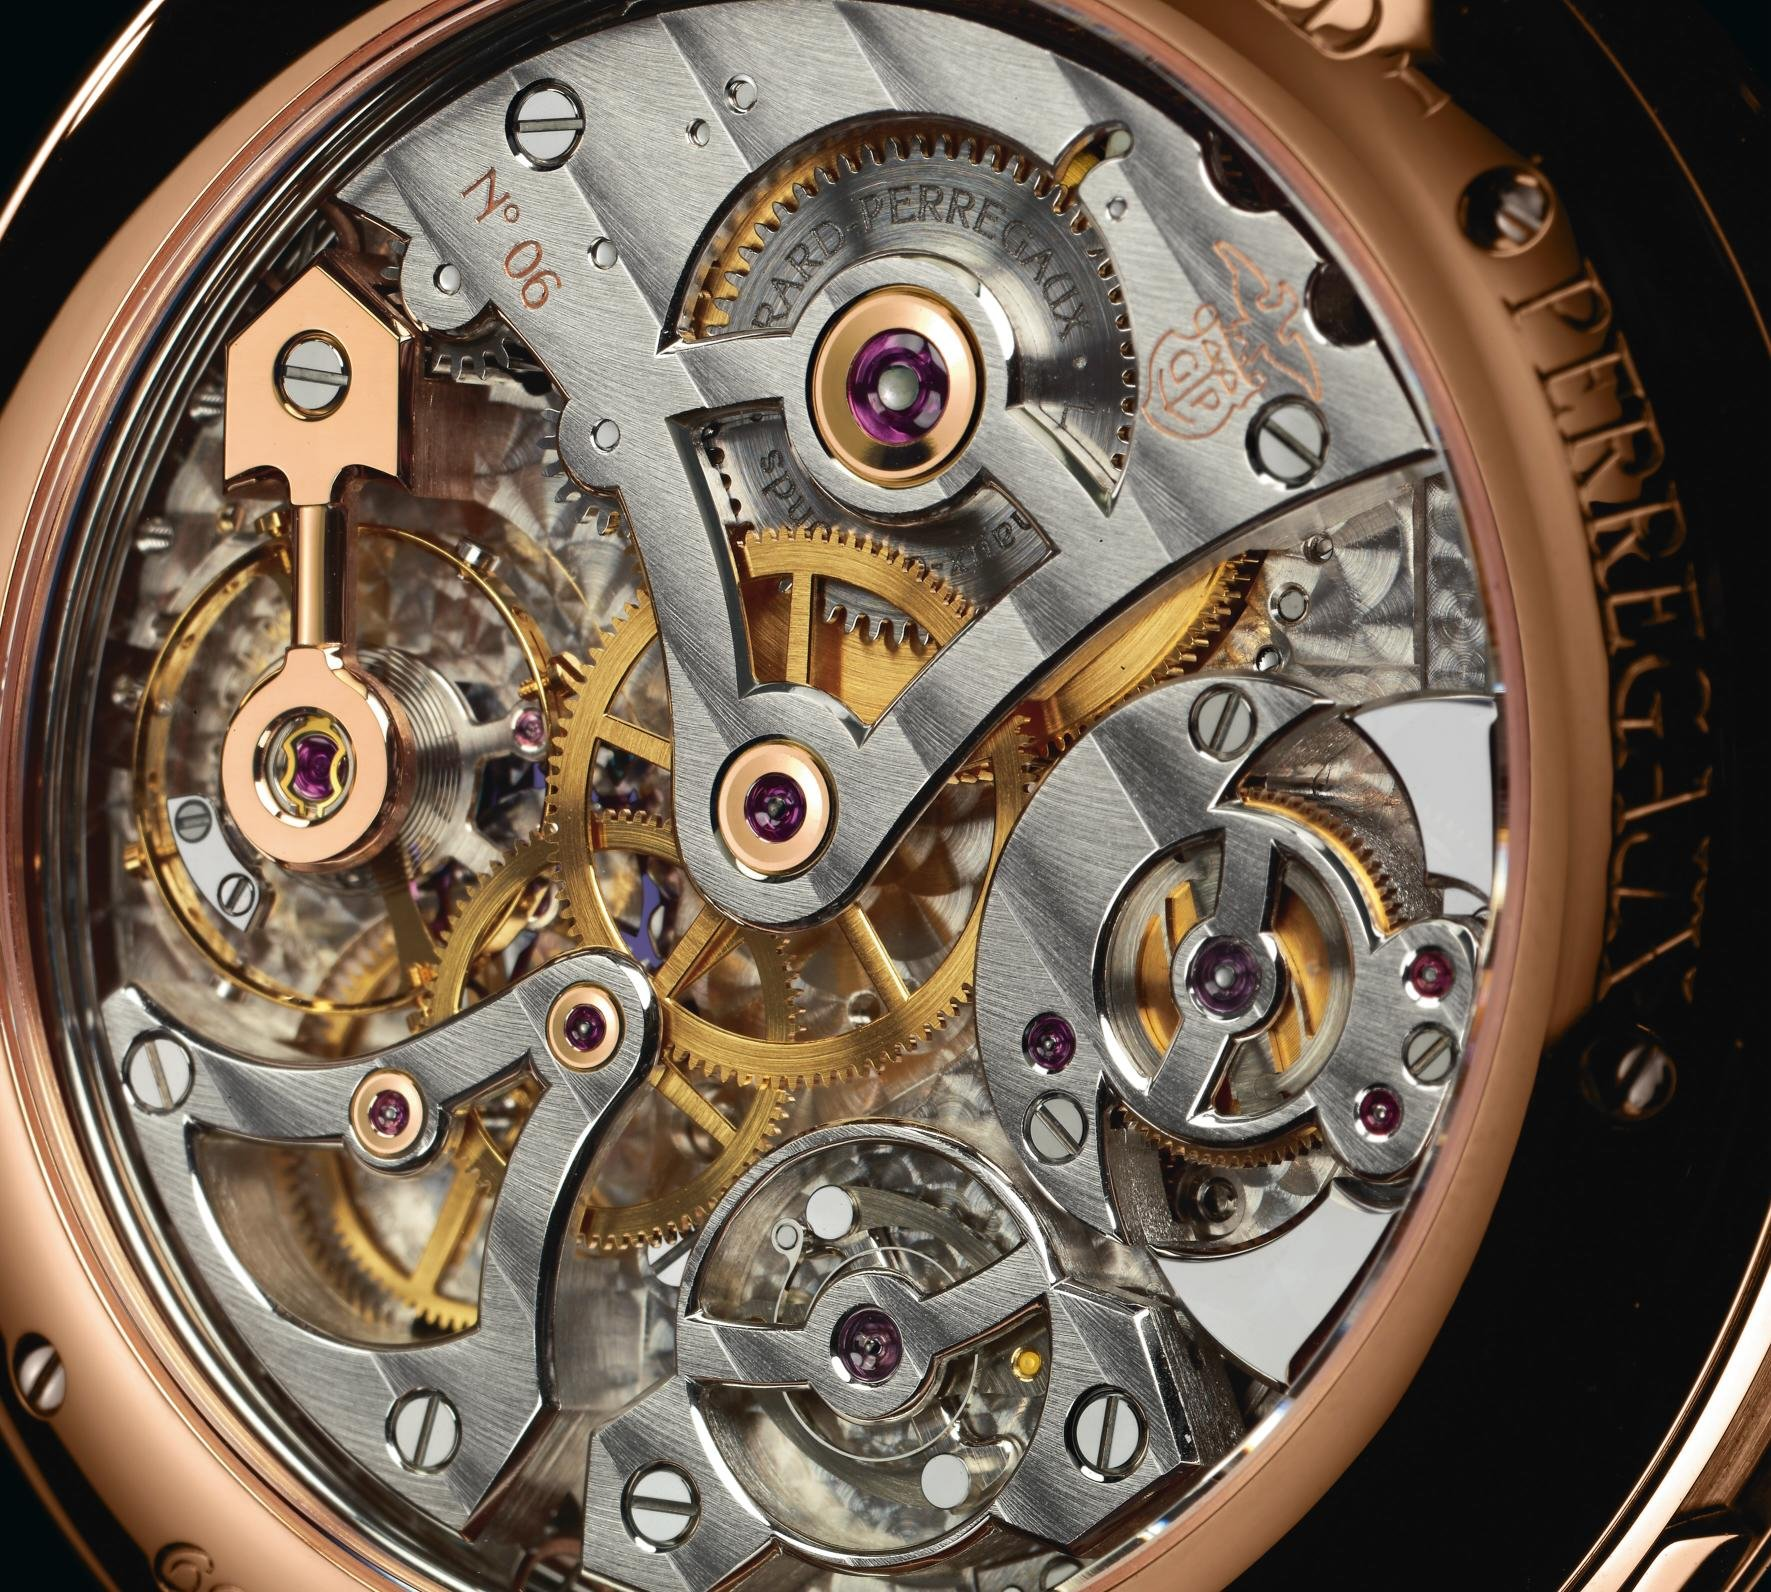 Girard-Perregaux's uber-exclusive Tri-Axial Tourbillon launched for a cool $500K -